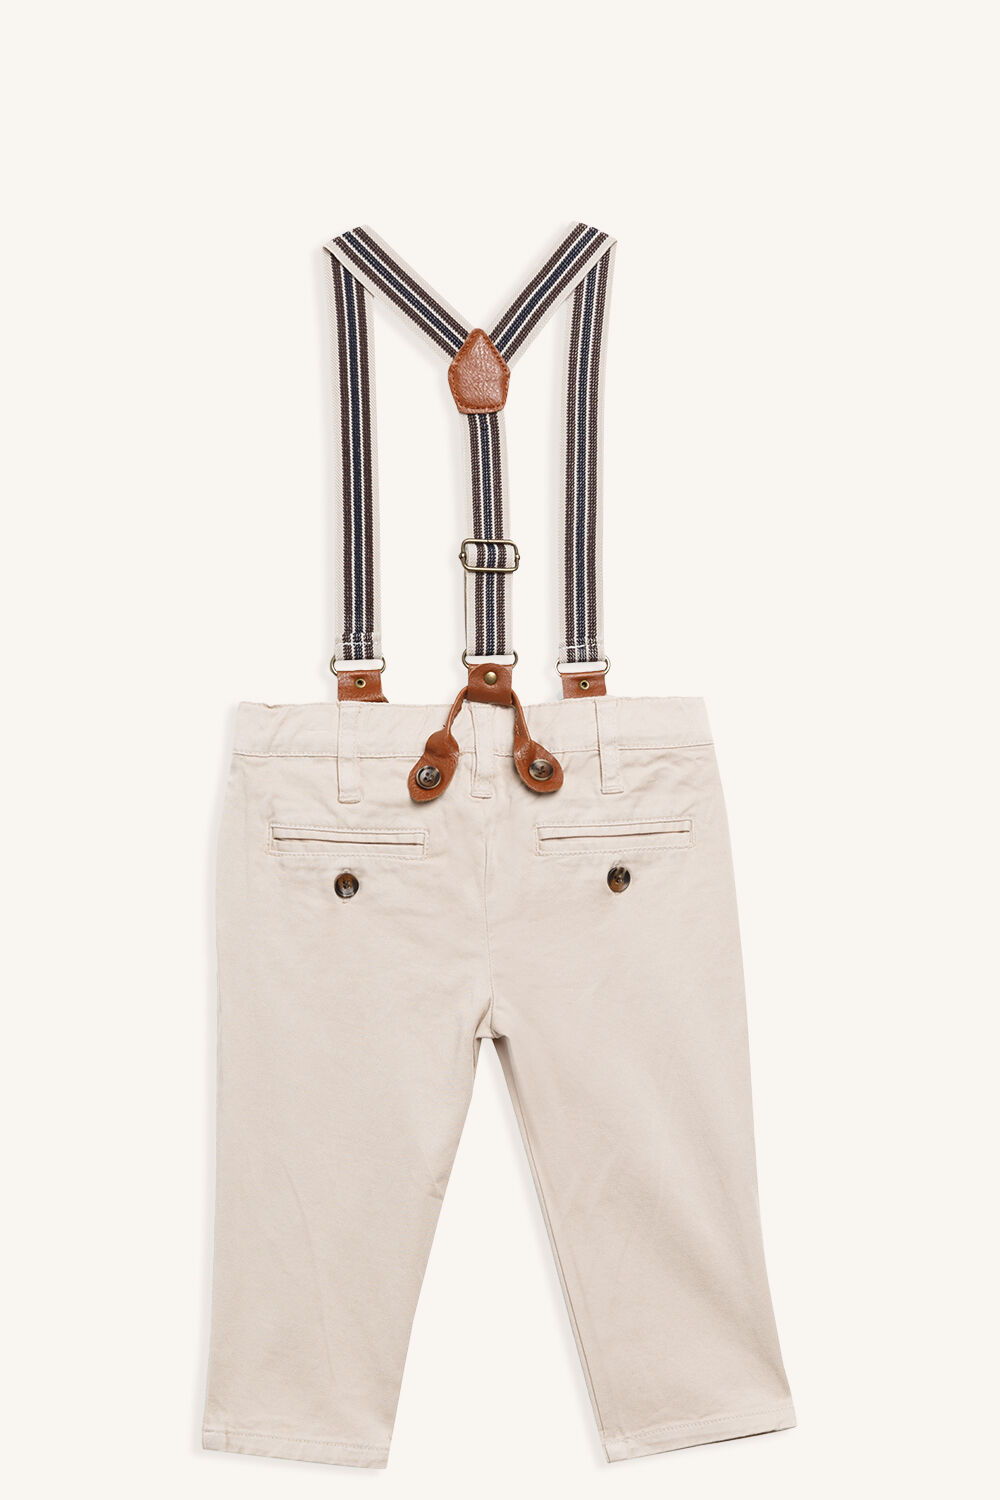 BASIC CHINO PANT WITH BRACES in colour SAFARI